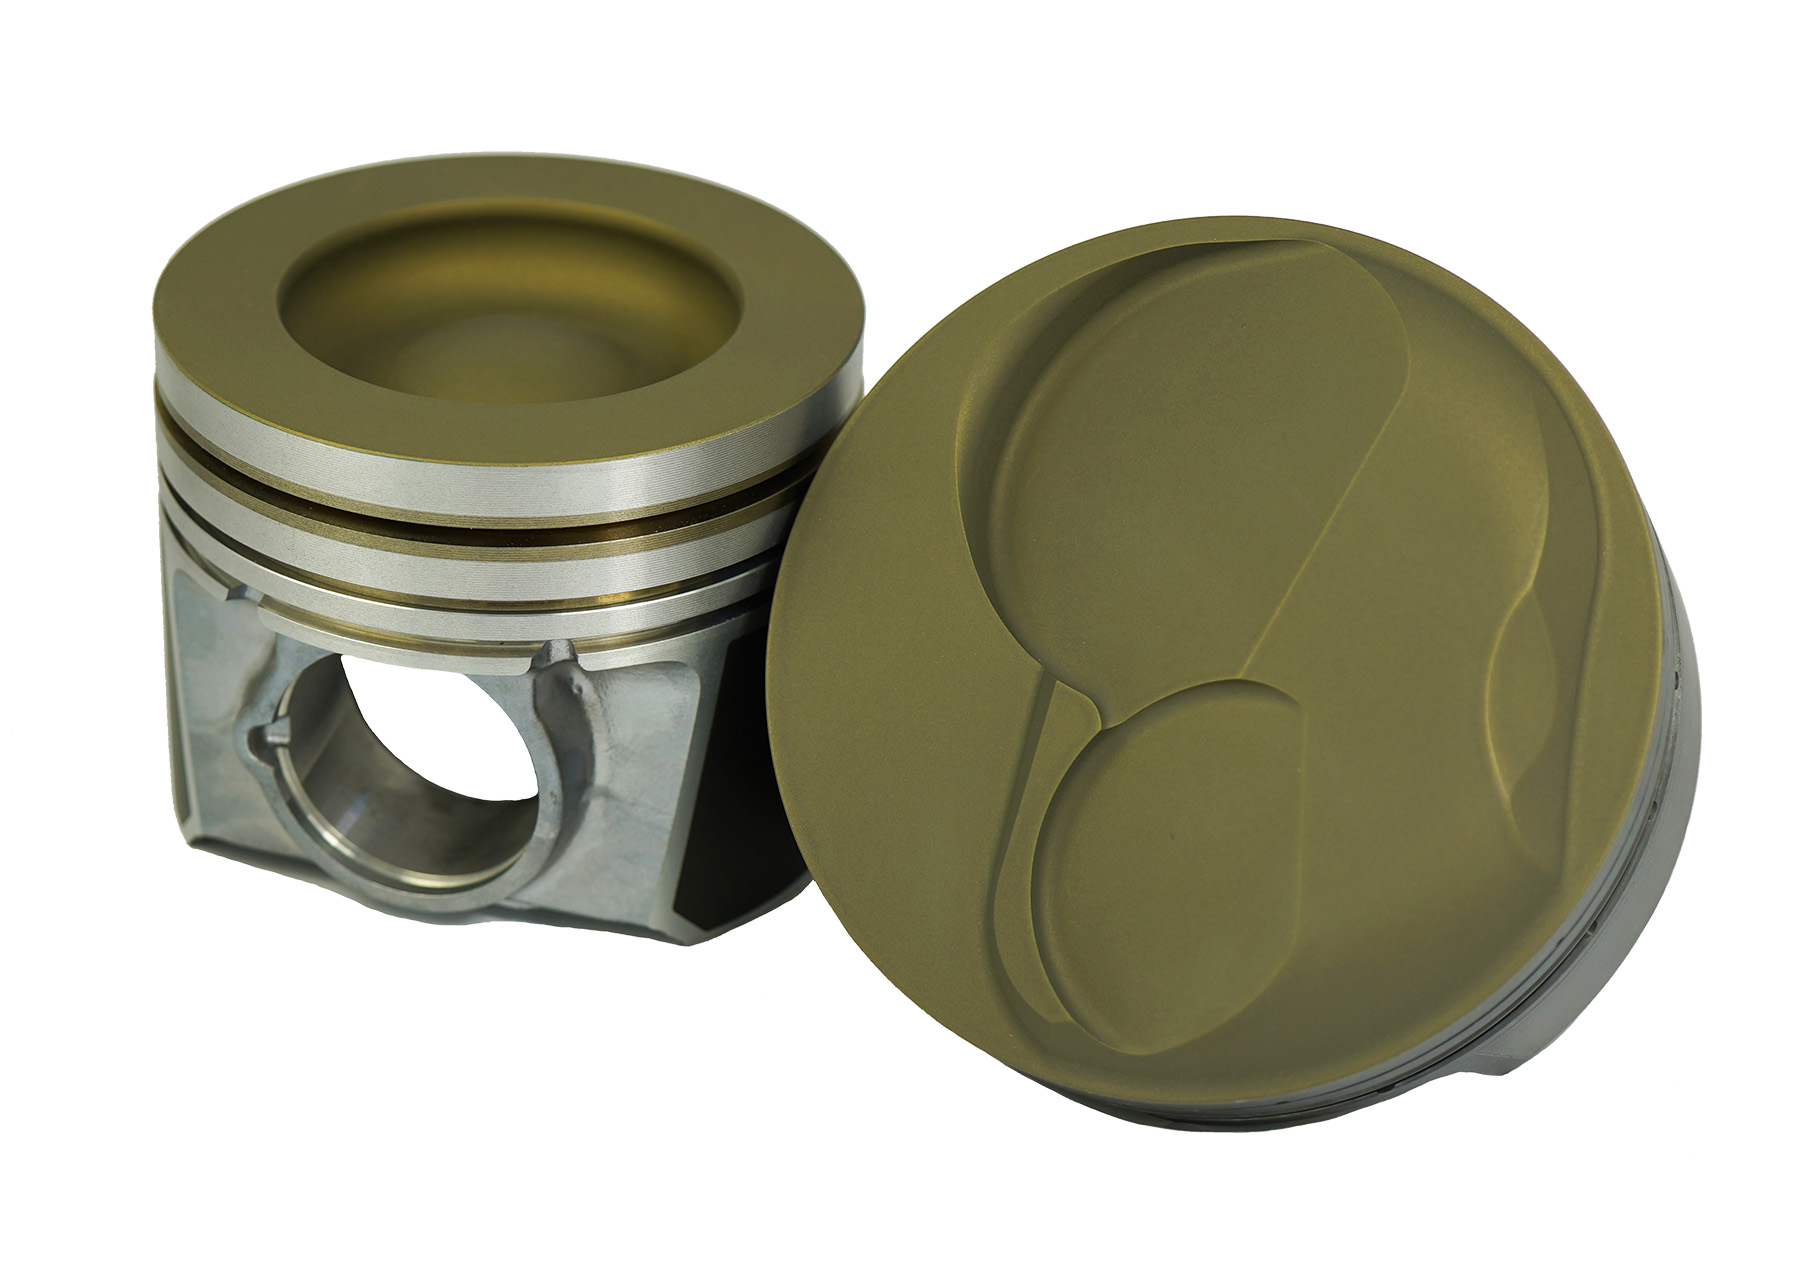 MAHLE Motorsport Introduces Cutting EdgeCeramic Thermal Barrier Coating for PowerPak Piston